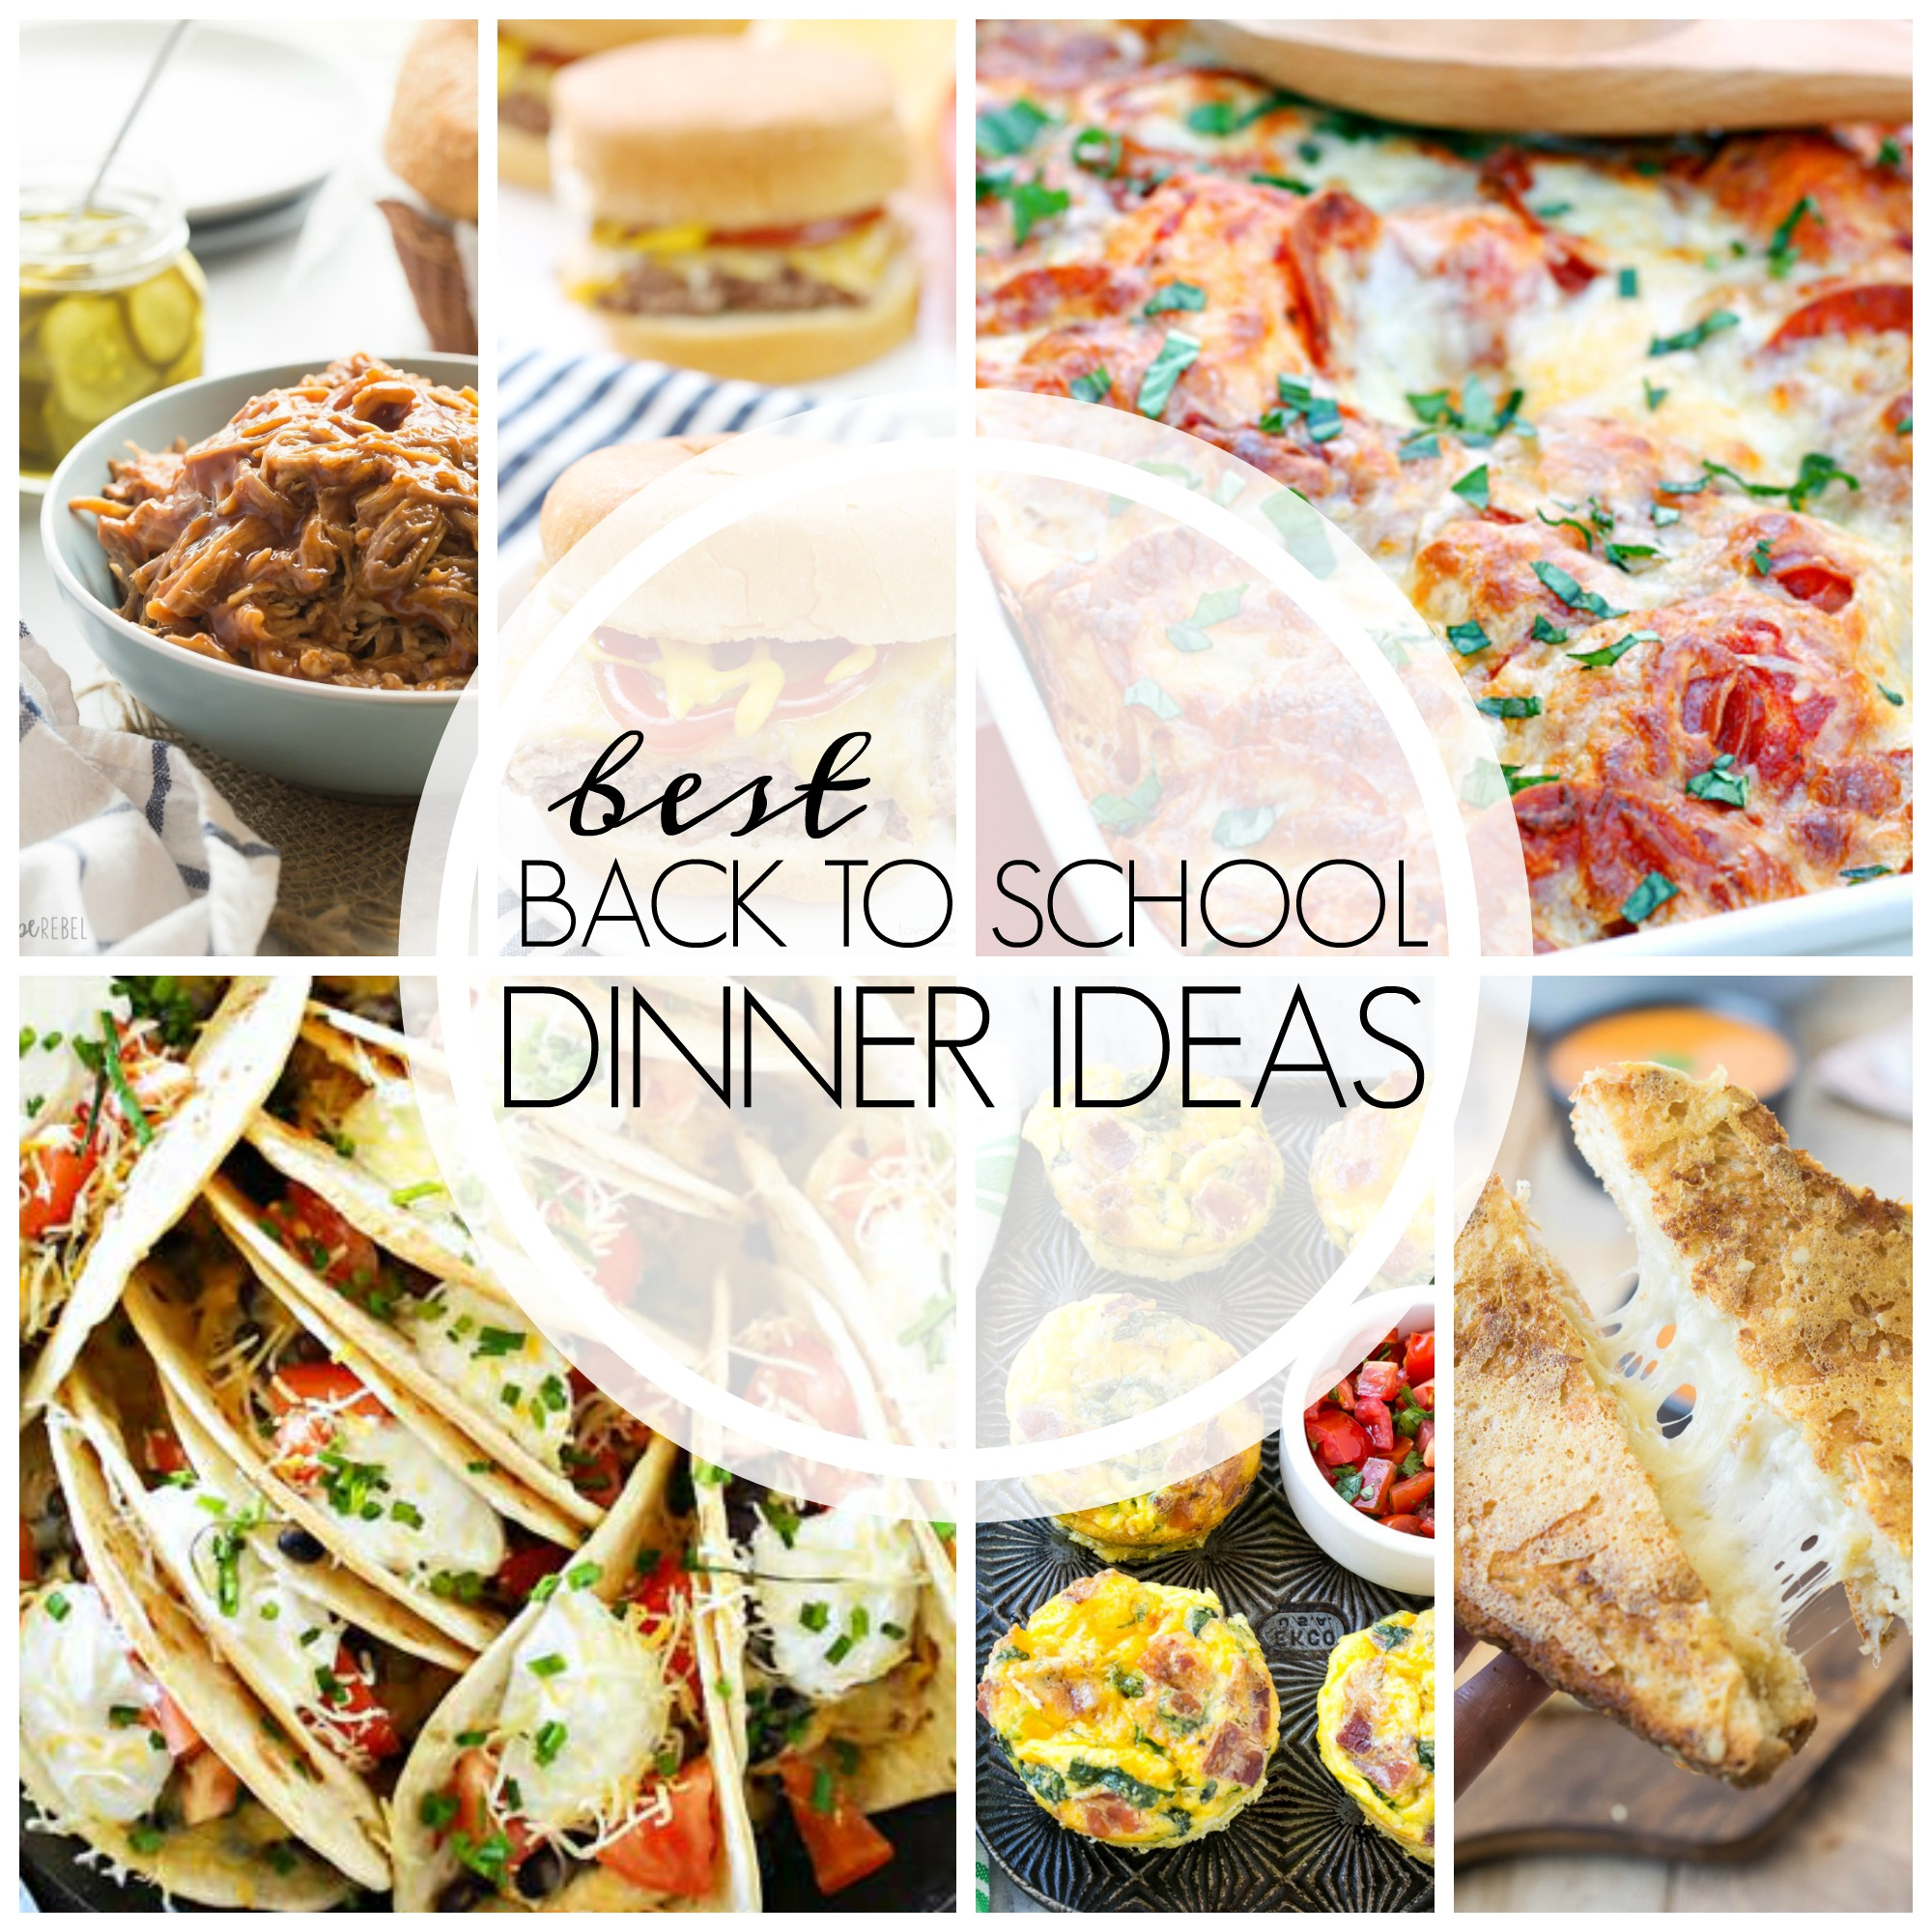 From tacos to casseroles and from grilled cheese to pasta, here are some of the best back to school dinner ideas to start the school year off right!